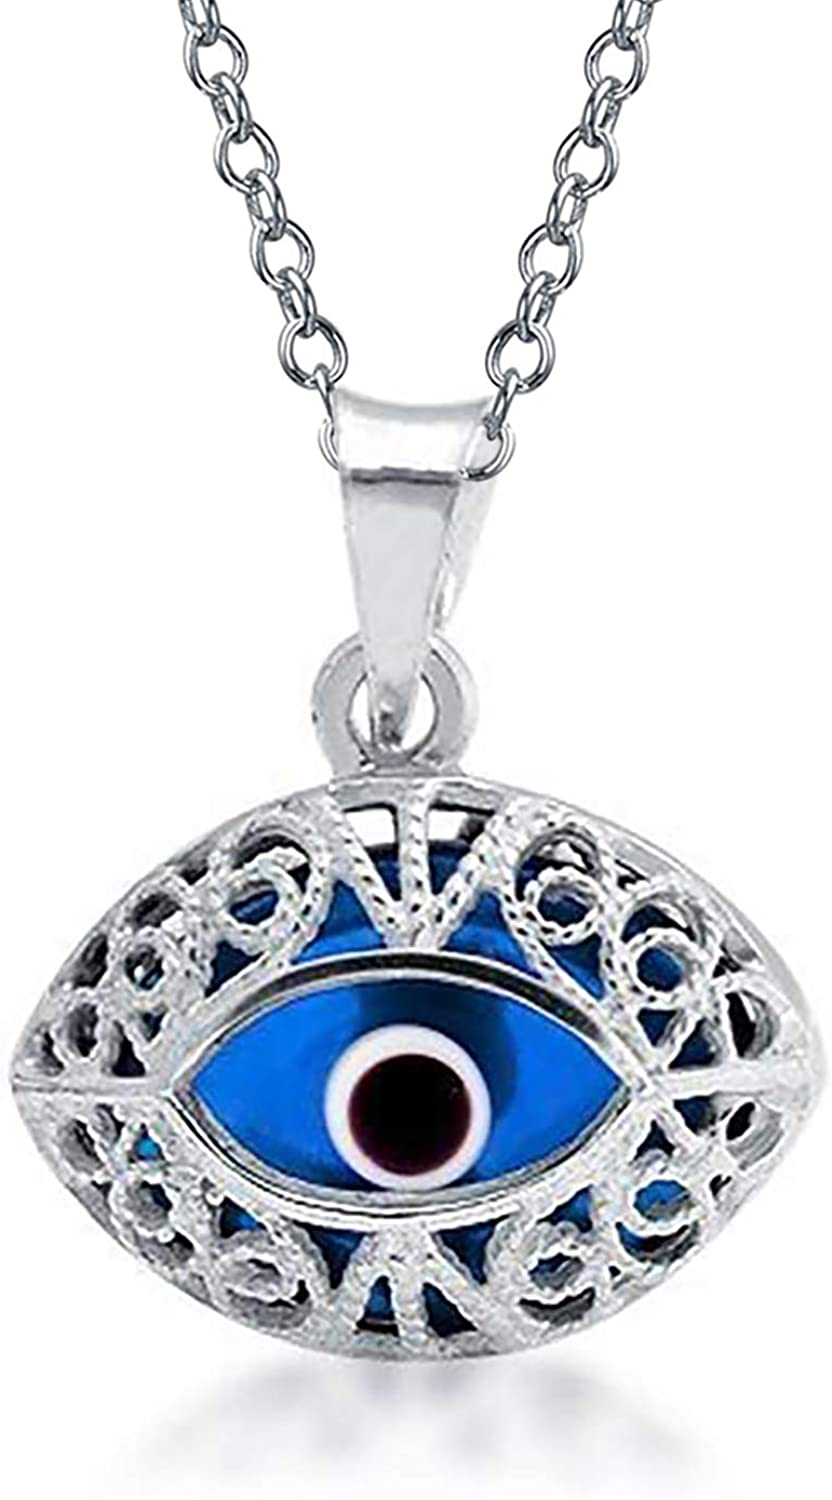 Evil Eye Mother-of-Pearl Turkish Luck Charm 925 Sterling Silver Necklace Pendant